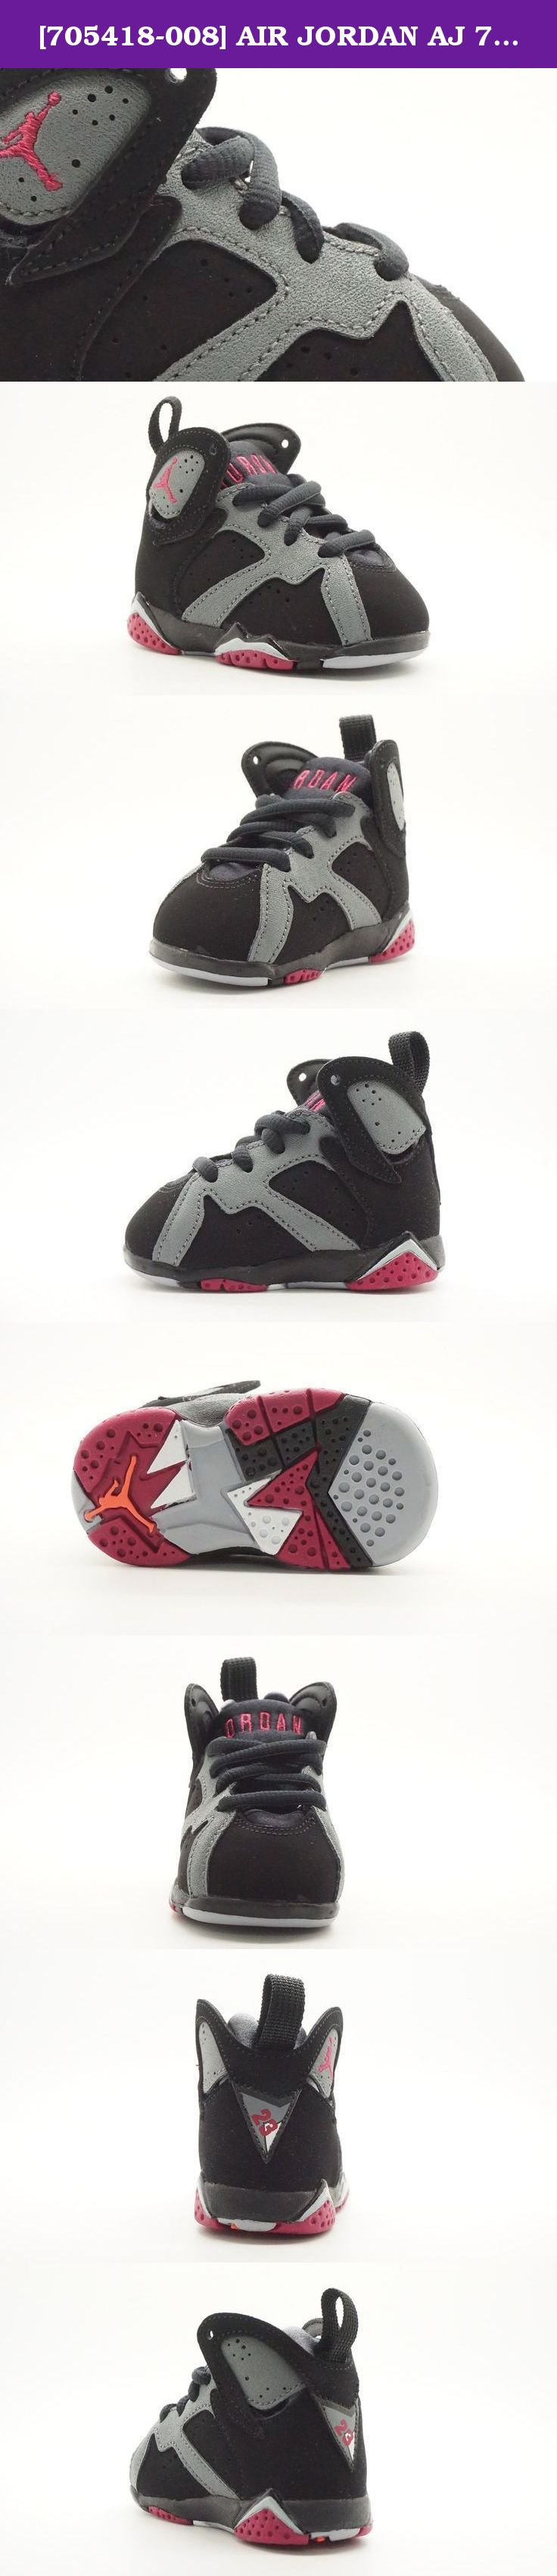 sale retailer 3d53c 79f63  705418-008  AIR JORDAN AJ 7 RETRO GT TD TODDLERS SNEAKERS AIR JORDANBLACK  SPRT FCHS CL GRY WLFM. Jordan Little Kids AJ 7 Retro GT (black   sport  fuchsia ...